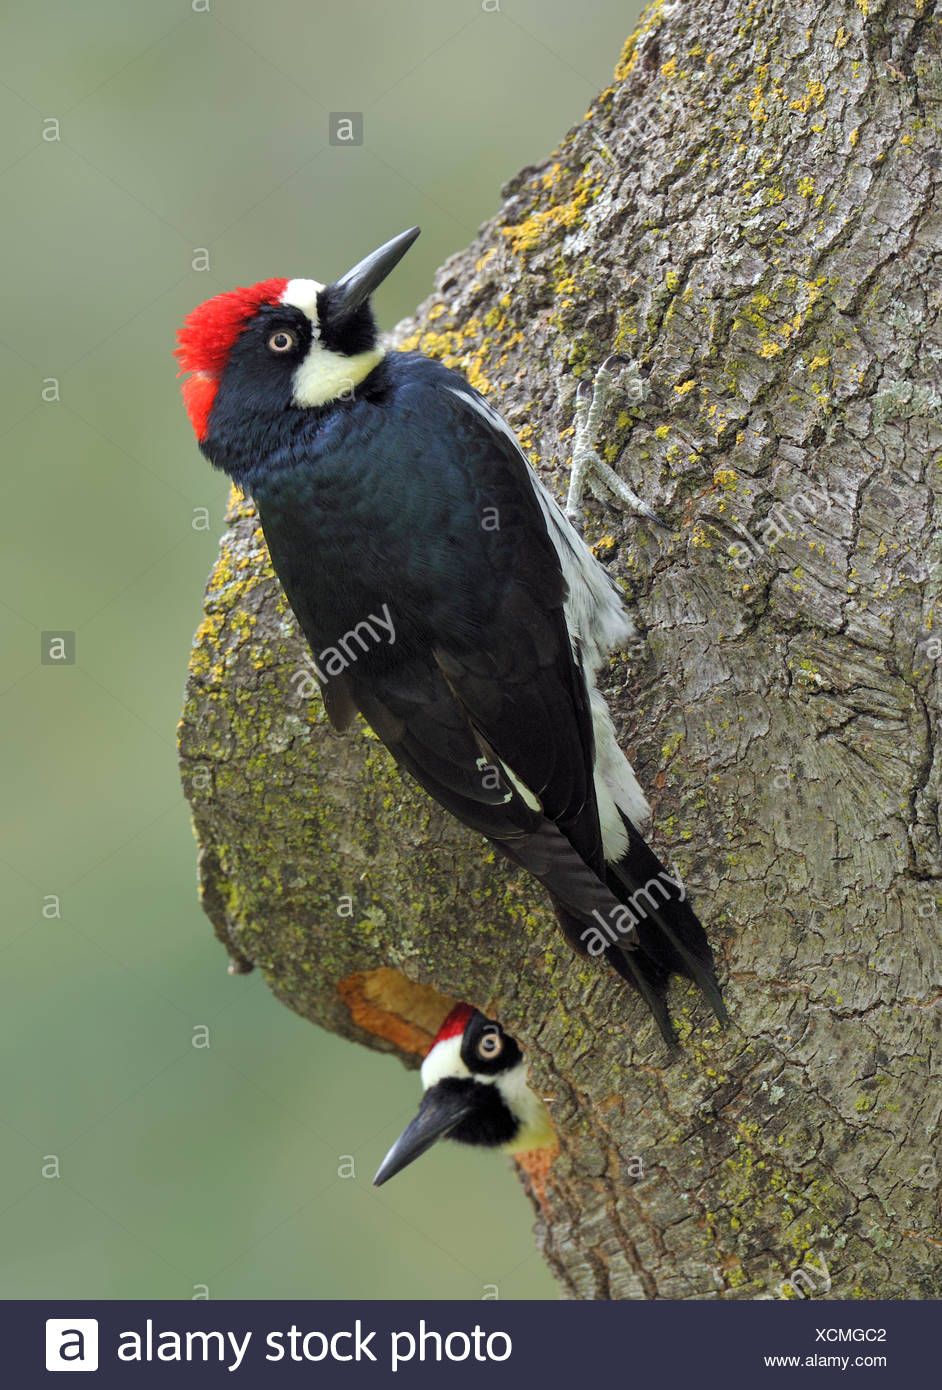 Pair of Acorn Woodpeckers (Melanerpes formicivorus) preparing nest hole in Oak Tree at Anderson River Park California - Stock Image